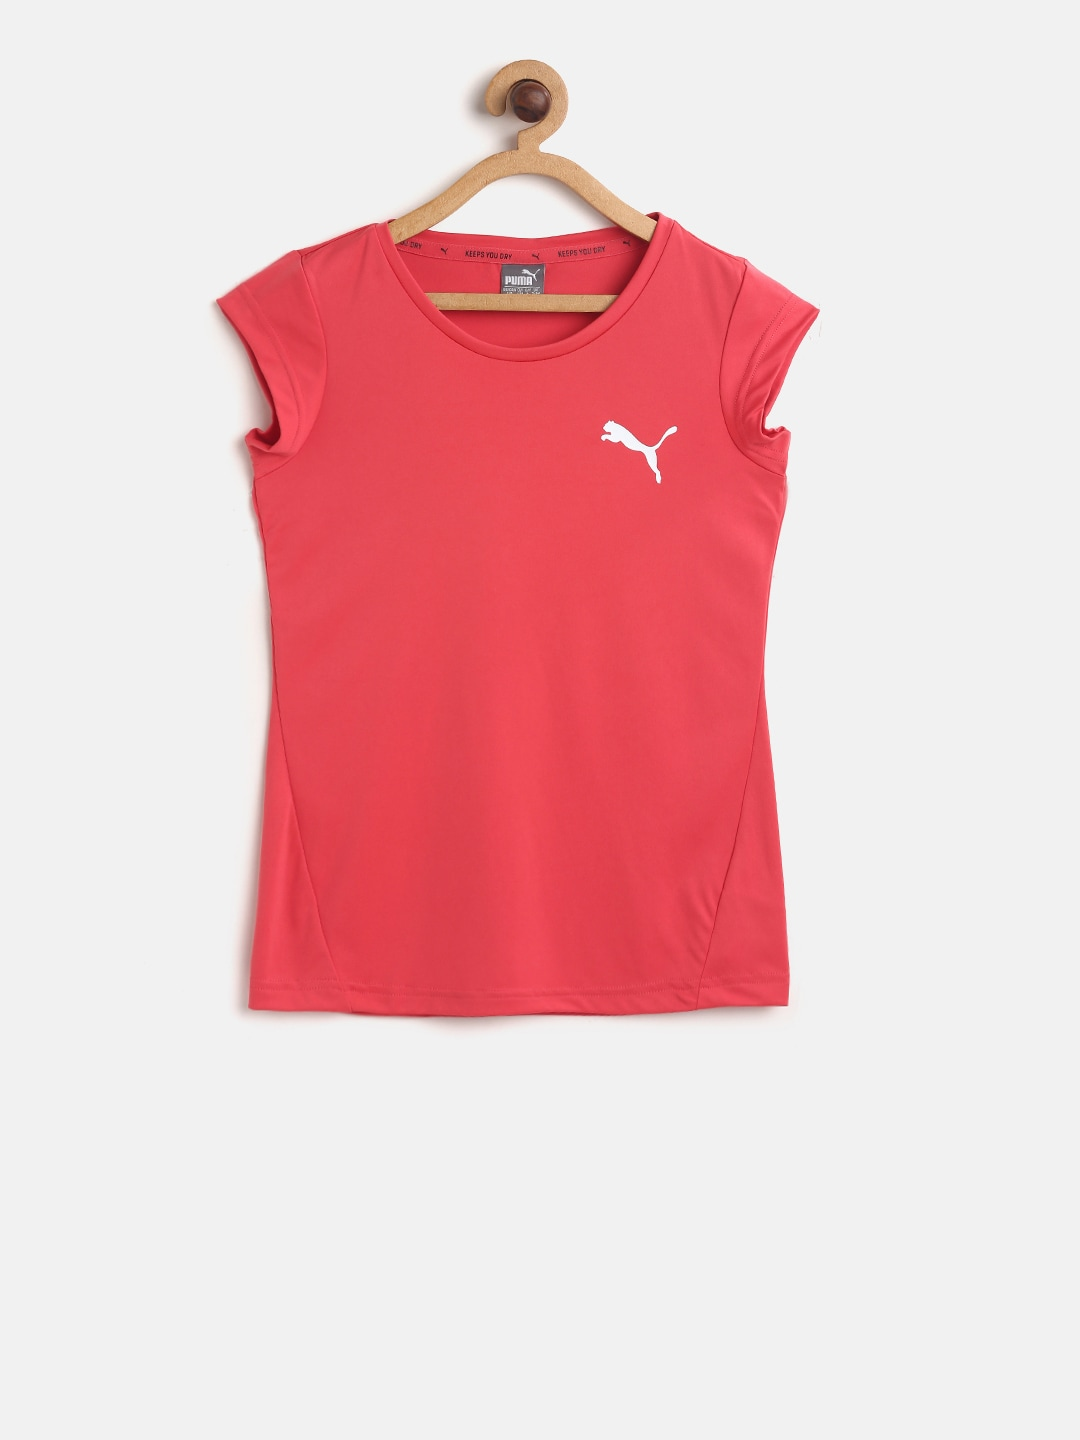 Puma T shirts - Buy Puma T Shirts For Men & Women Online in India